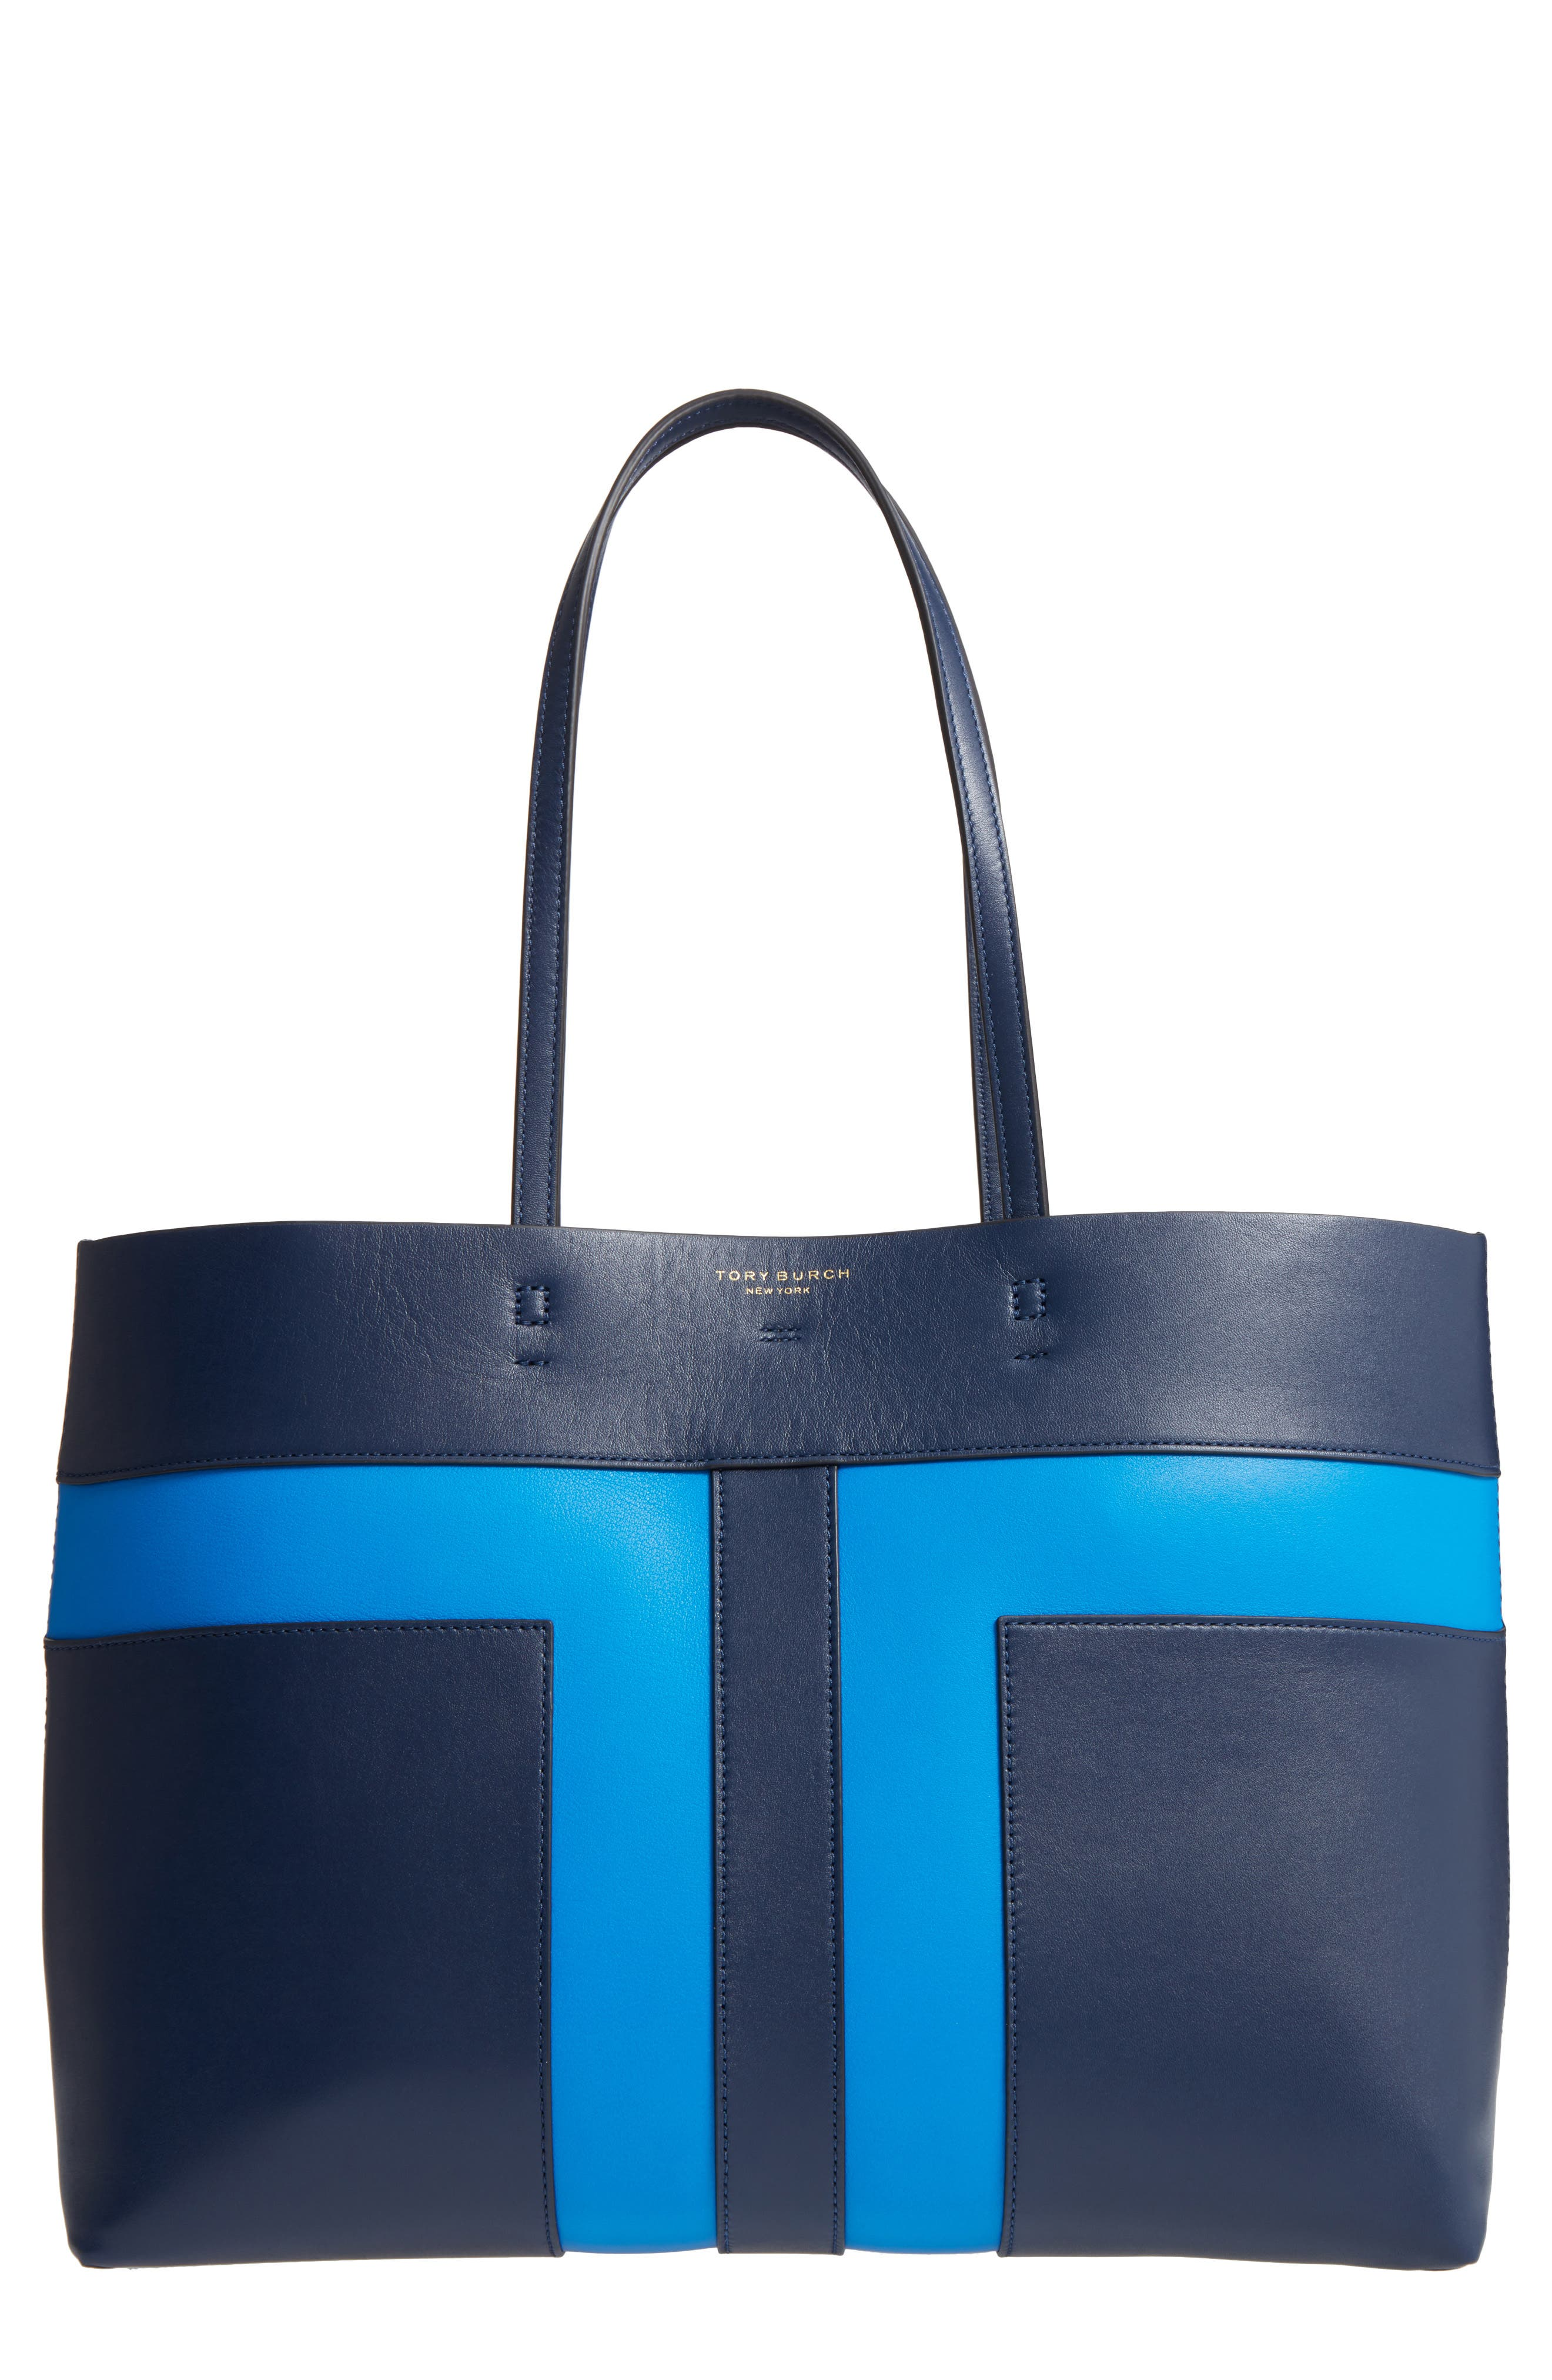 Block T Leather Tote,                             Main thumbnail 1, color,                             Royal Navy/ Galleria Blue